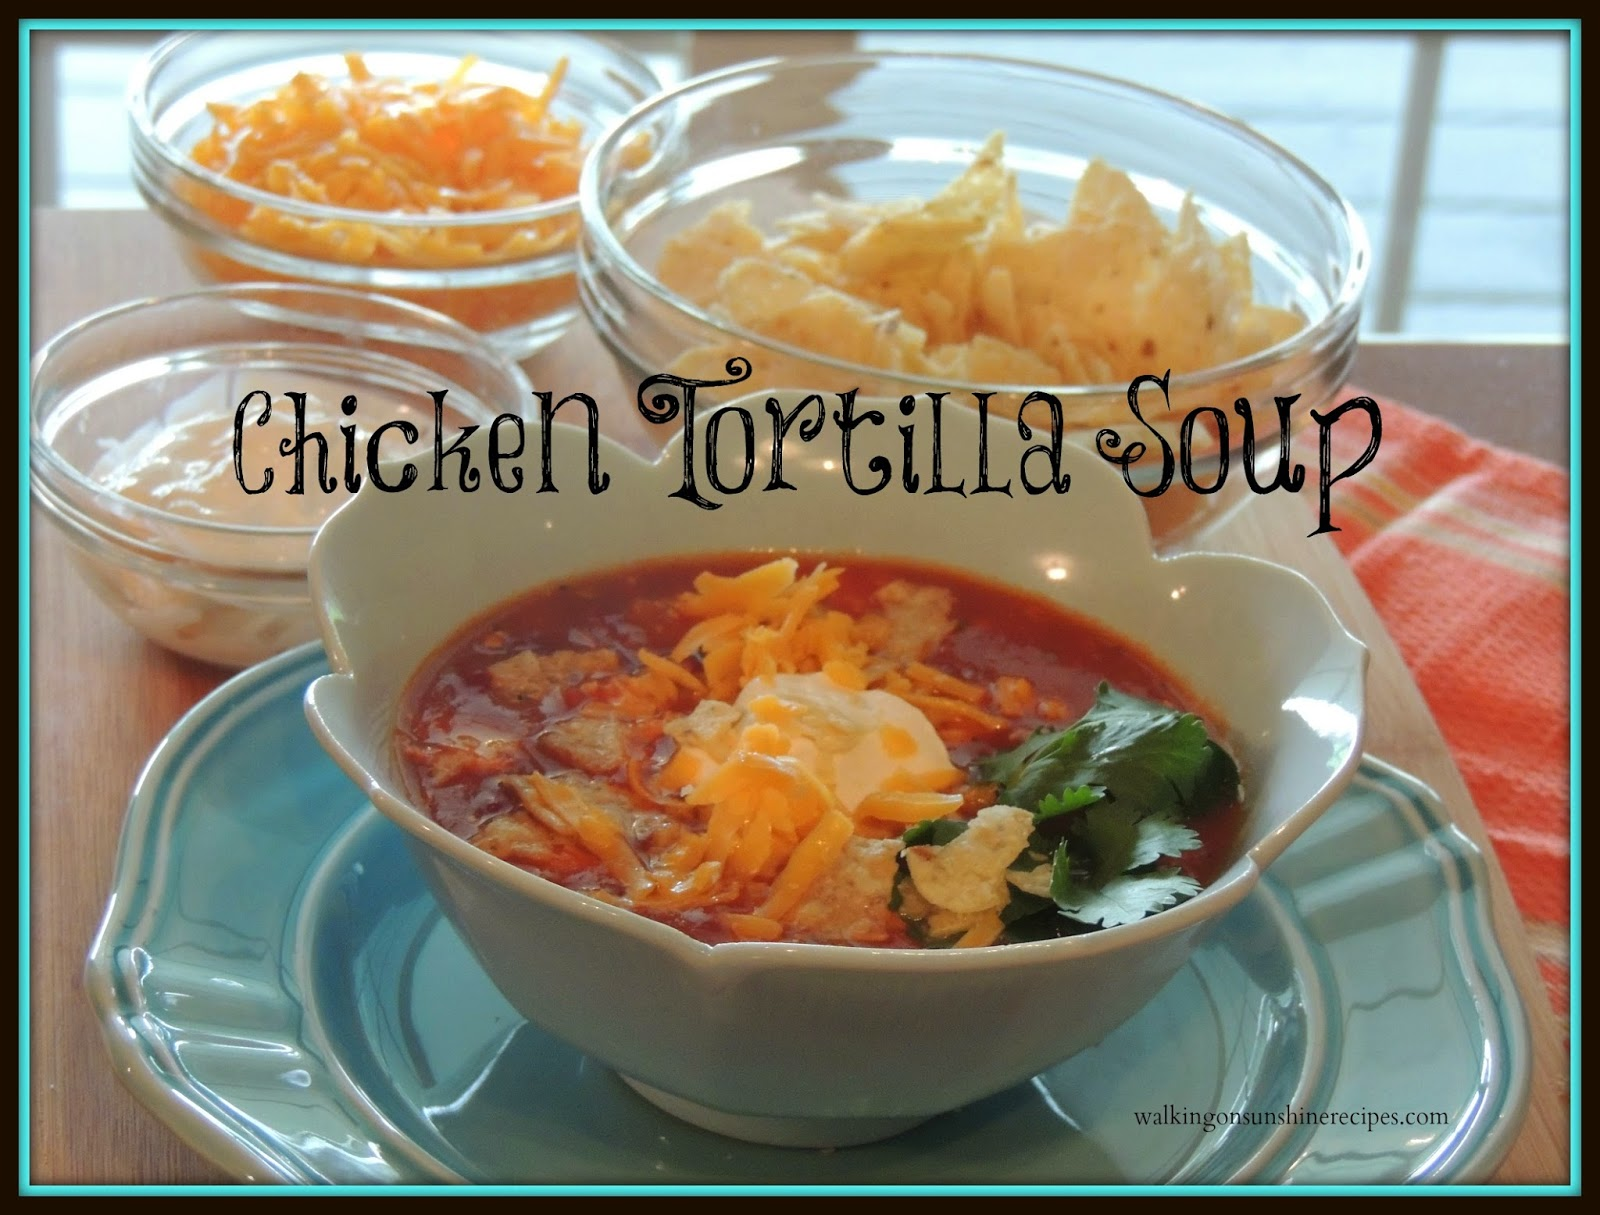 An easy and delicious recipe fro Chicken Tortilla Soup from Walking on Sunshine Recipes.